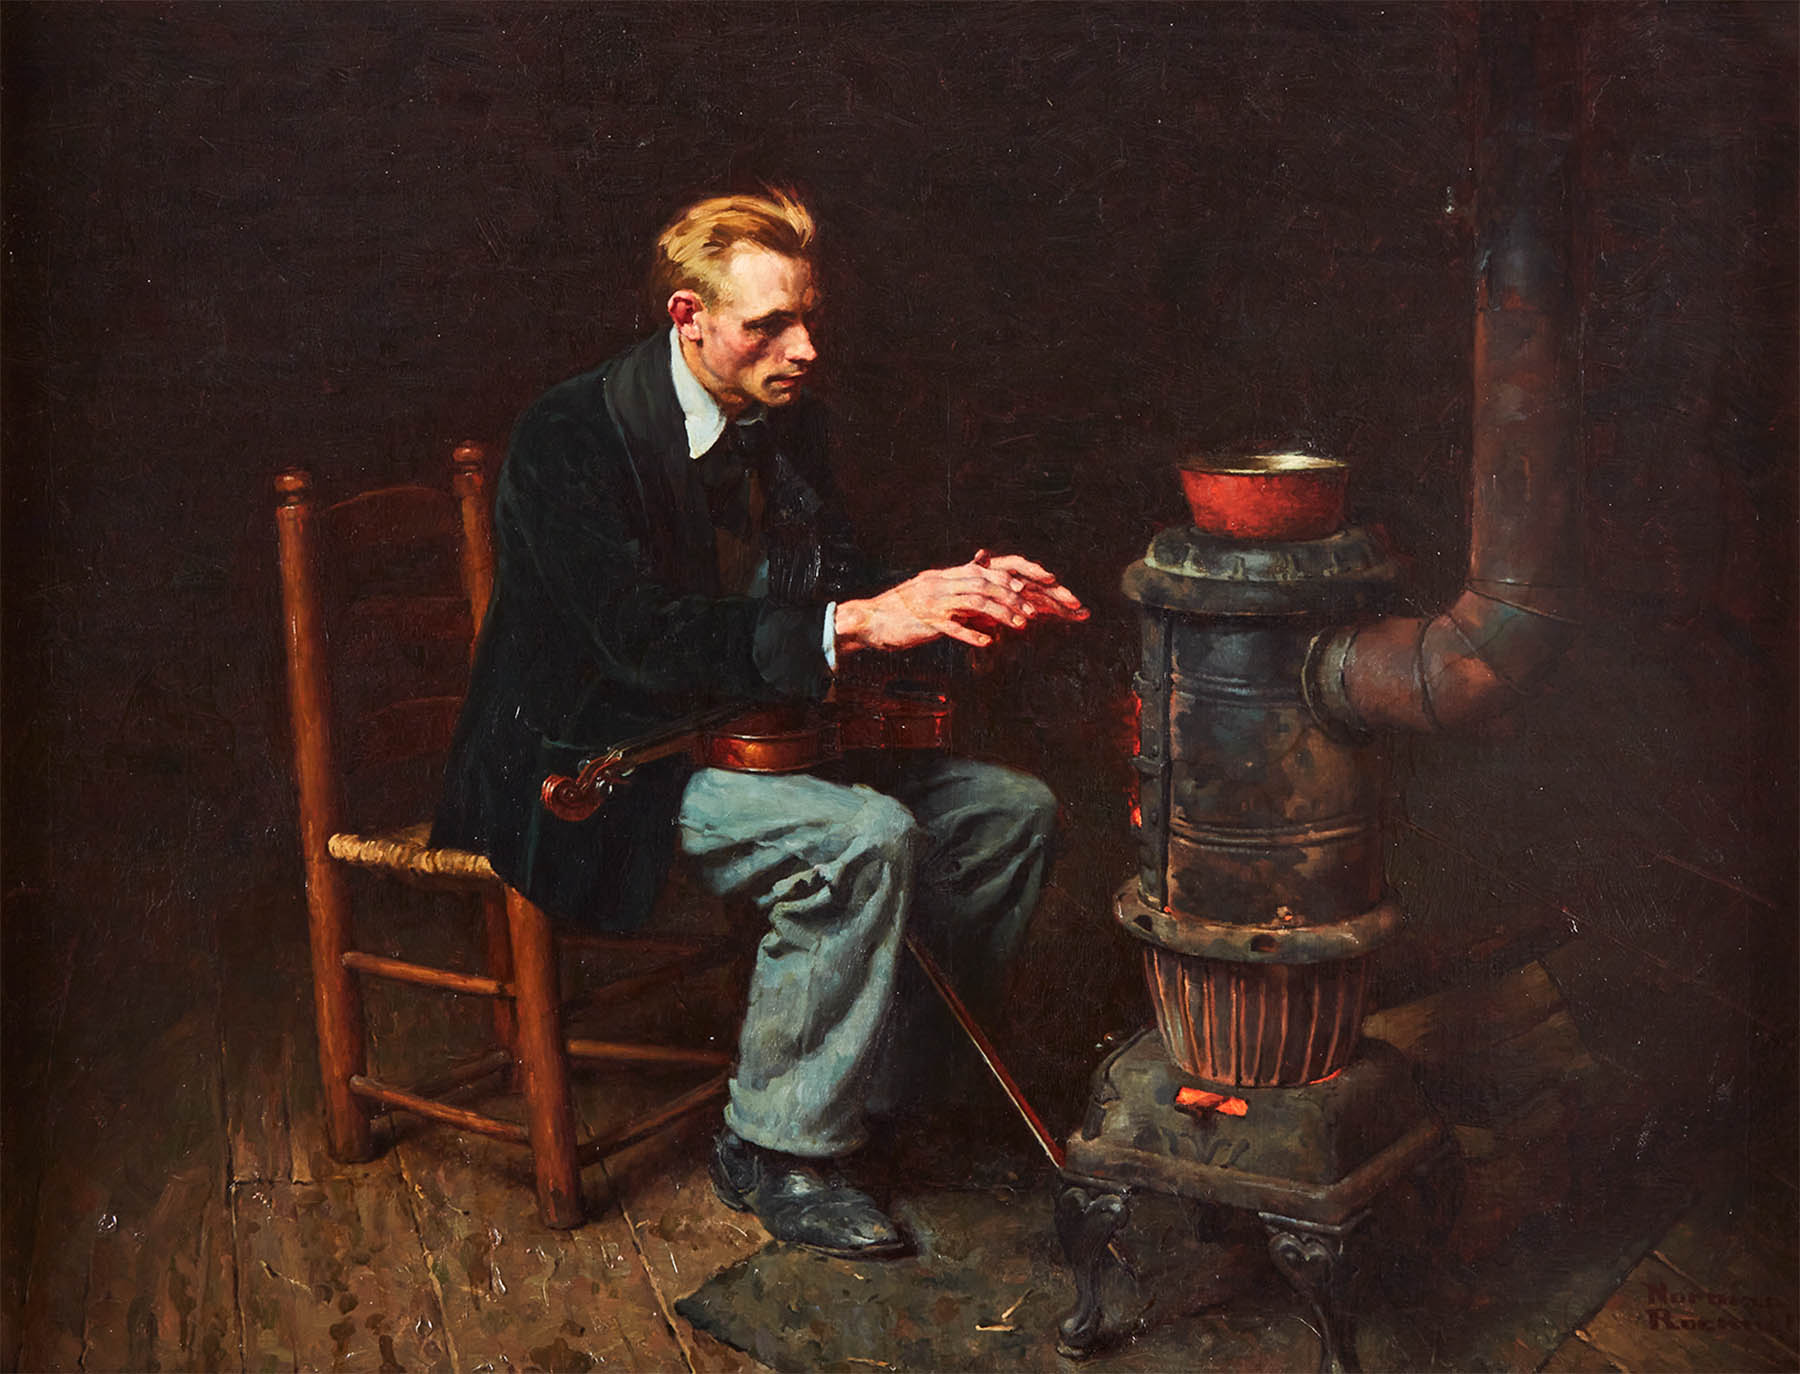 Norman Rockwell Painting, The Melody Stilled by Cold